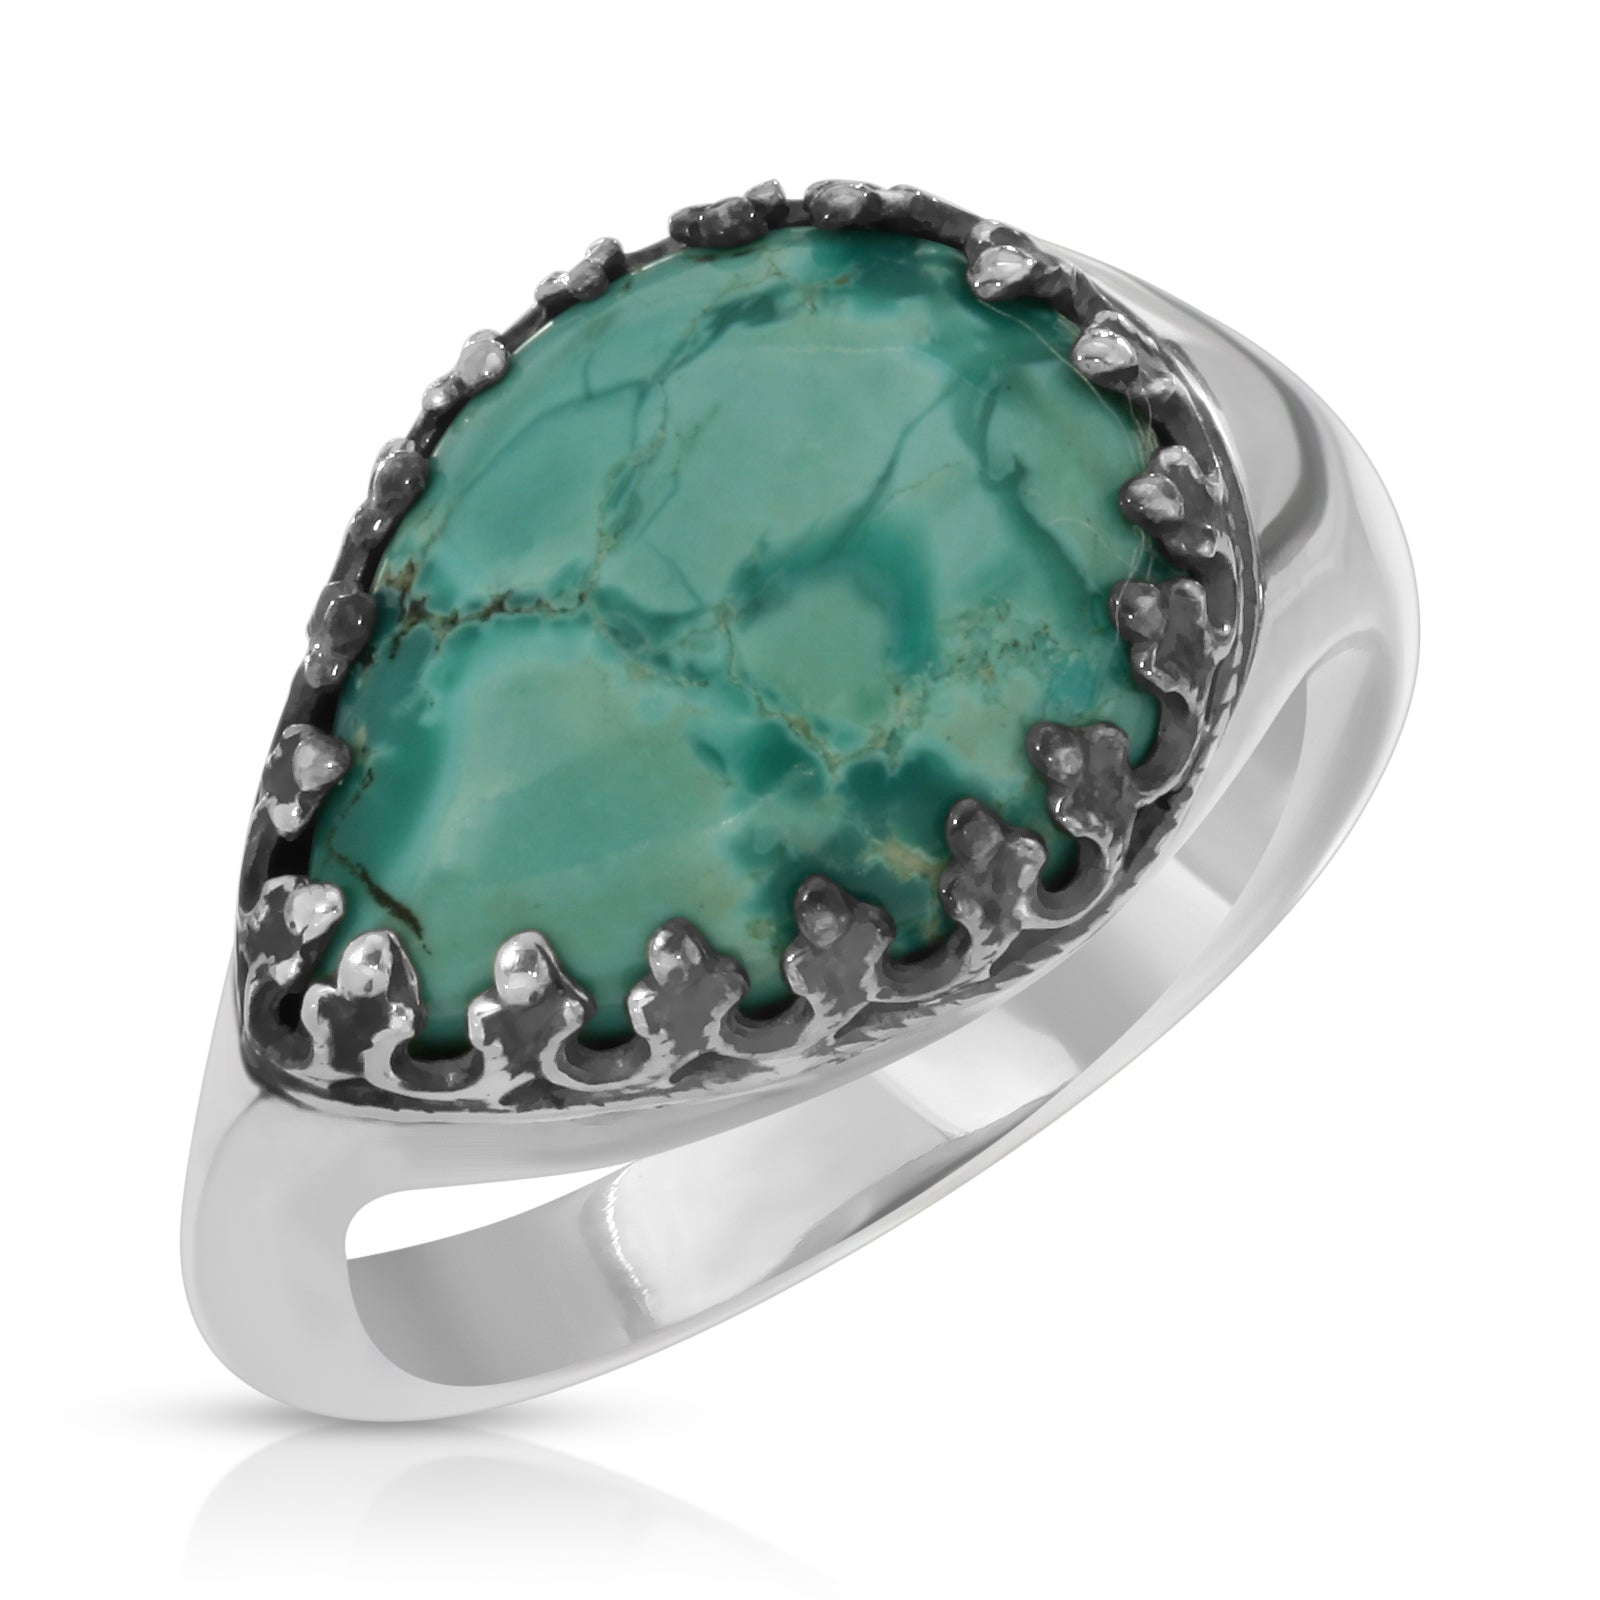 Teardrop Turquoise Ring - The W Brothers